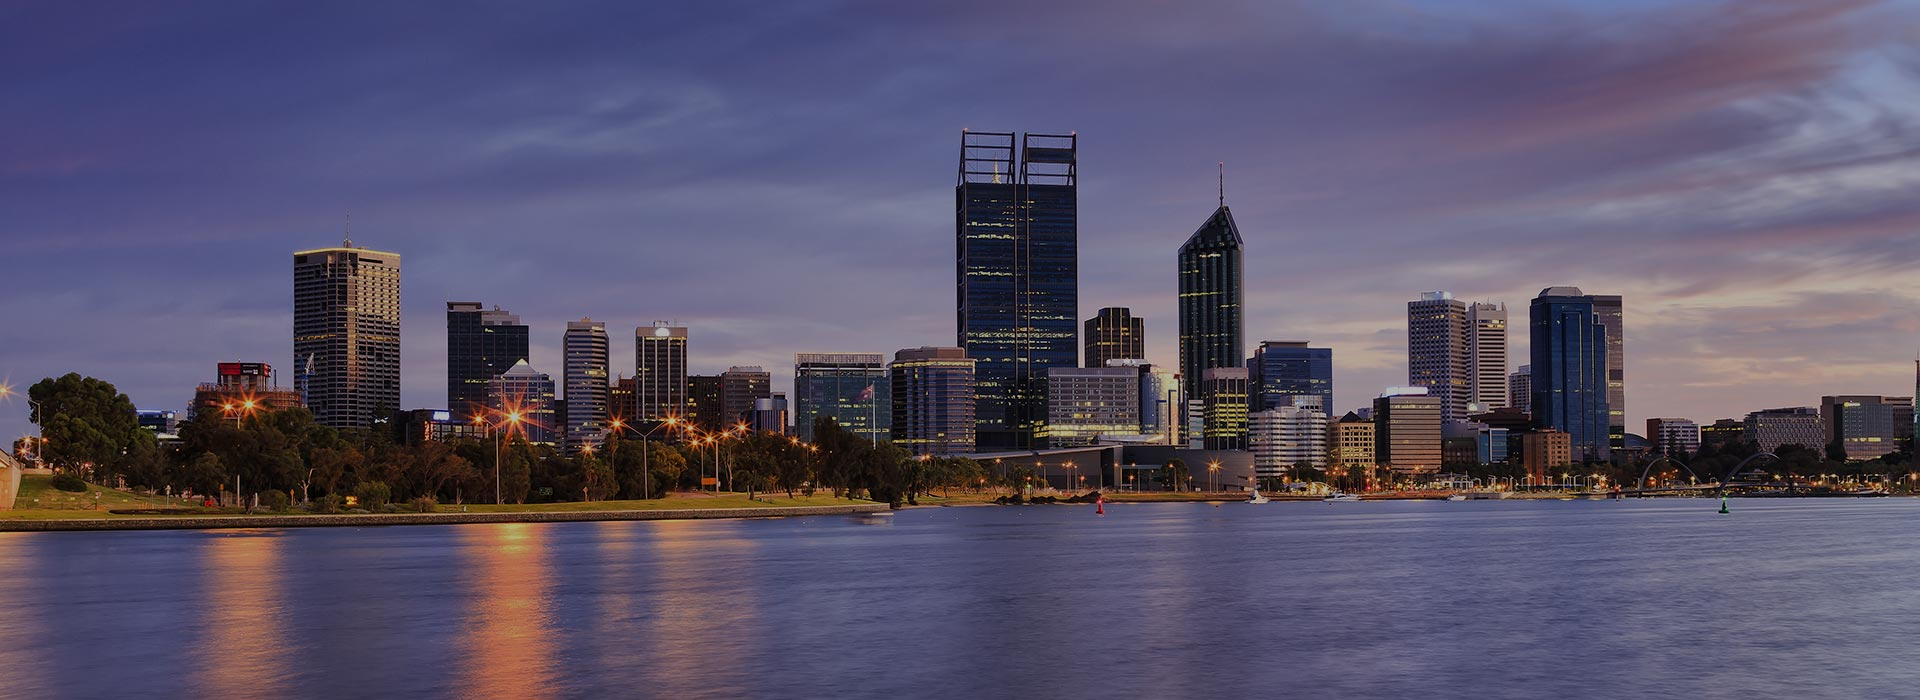 Perth city overview